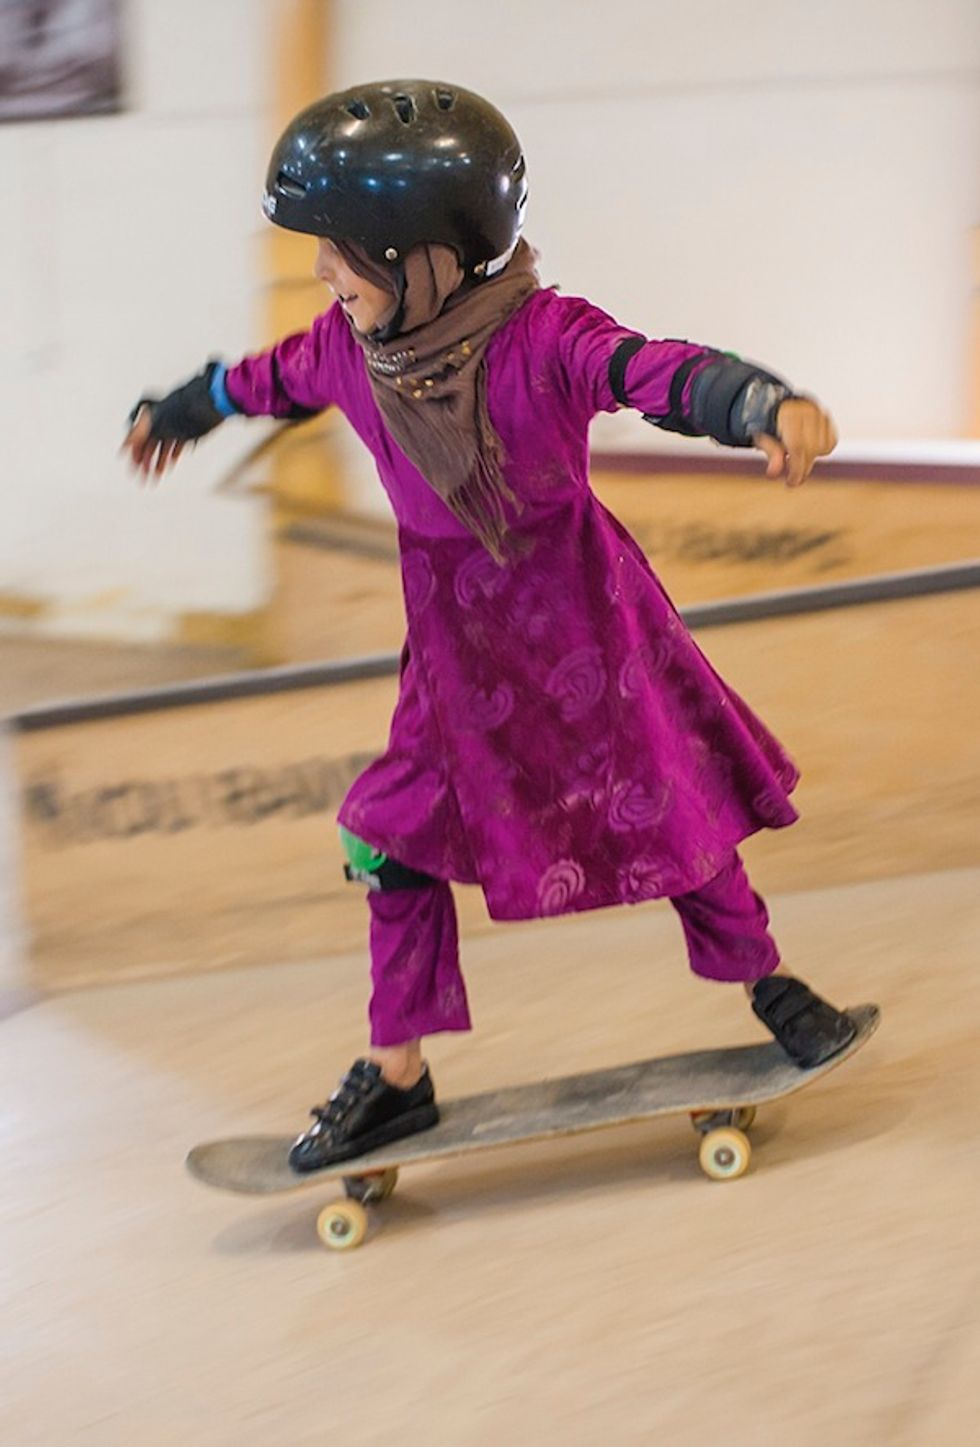 """Preview Photos From the Upcoming """"Skate Girls of Kabul"""" Show"""